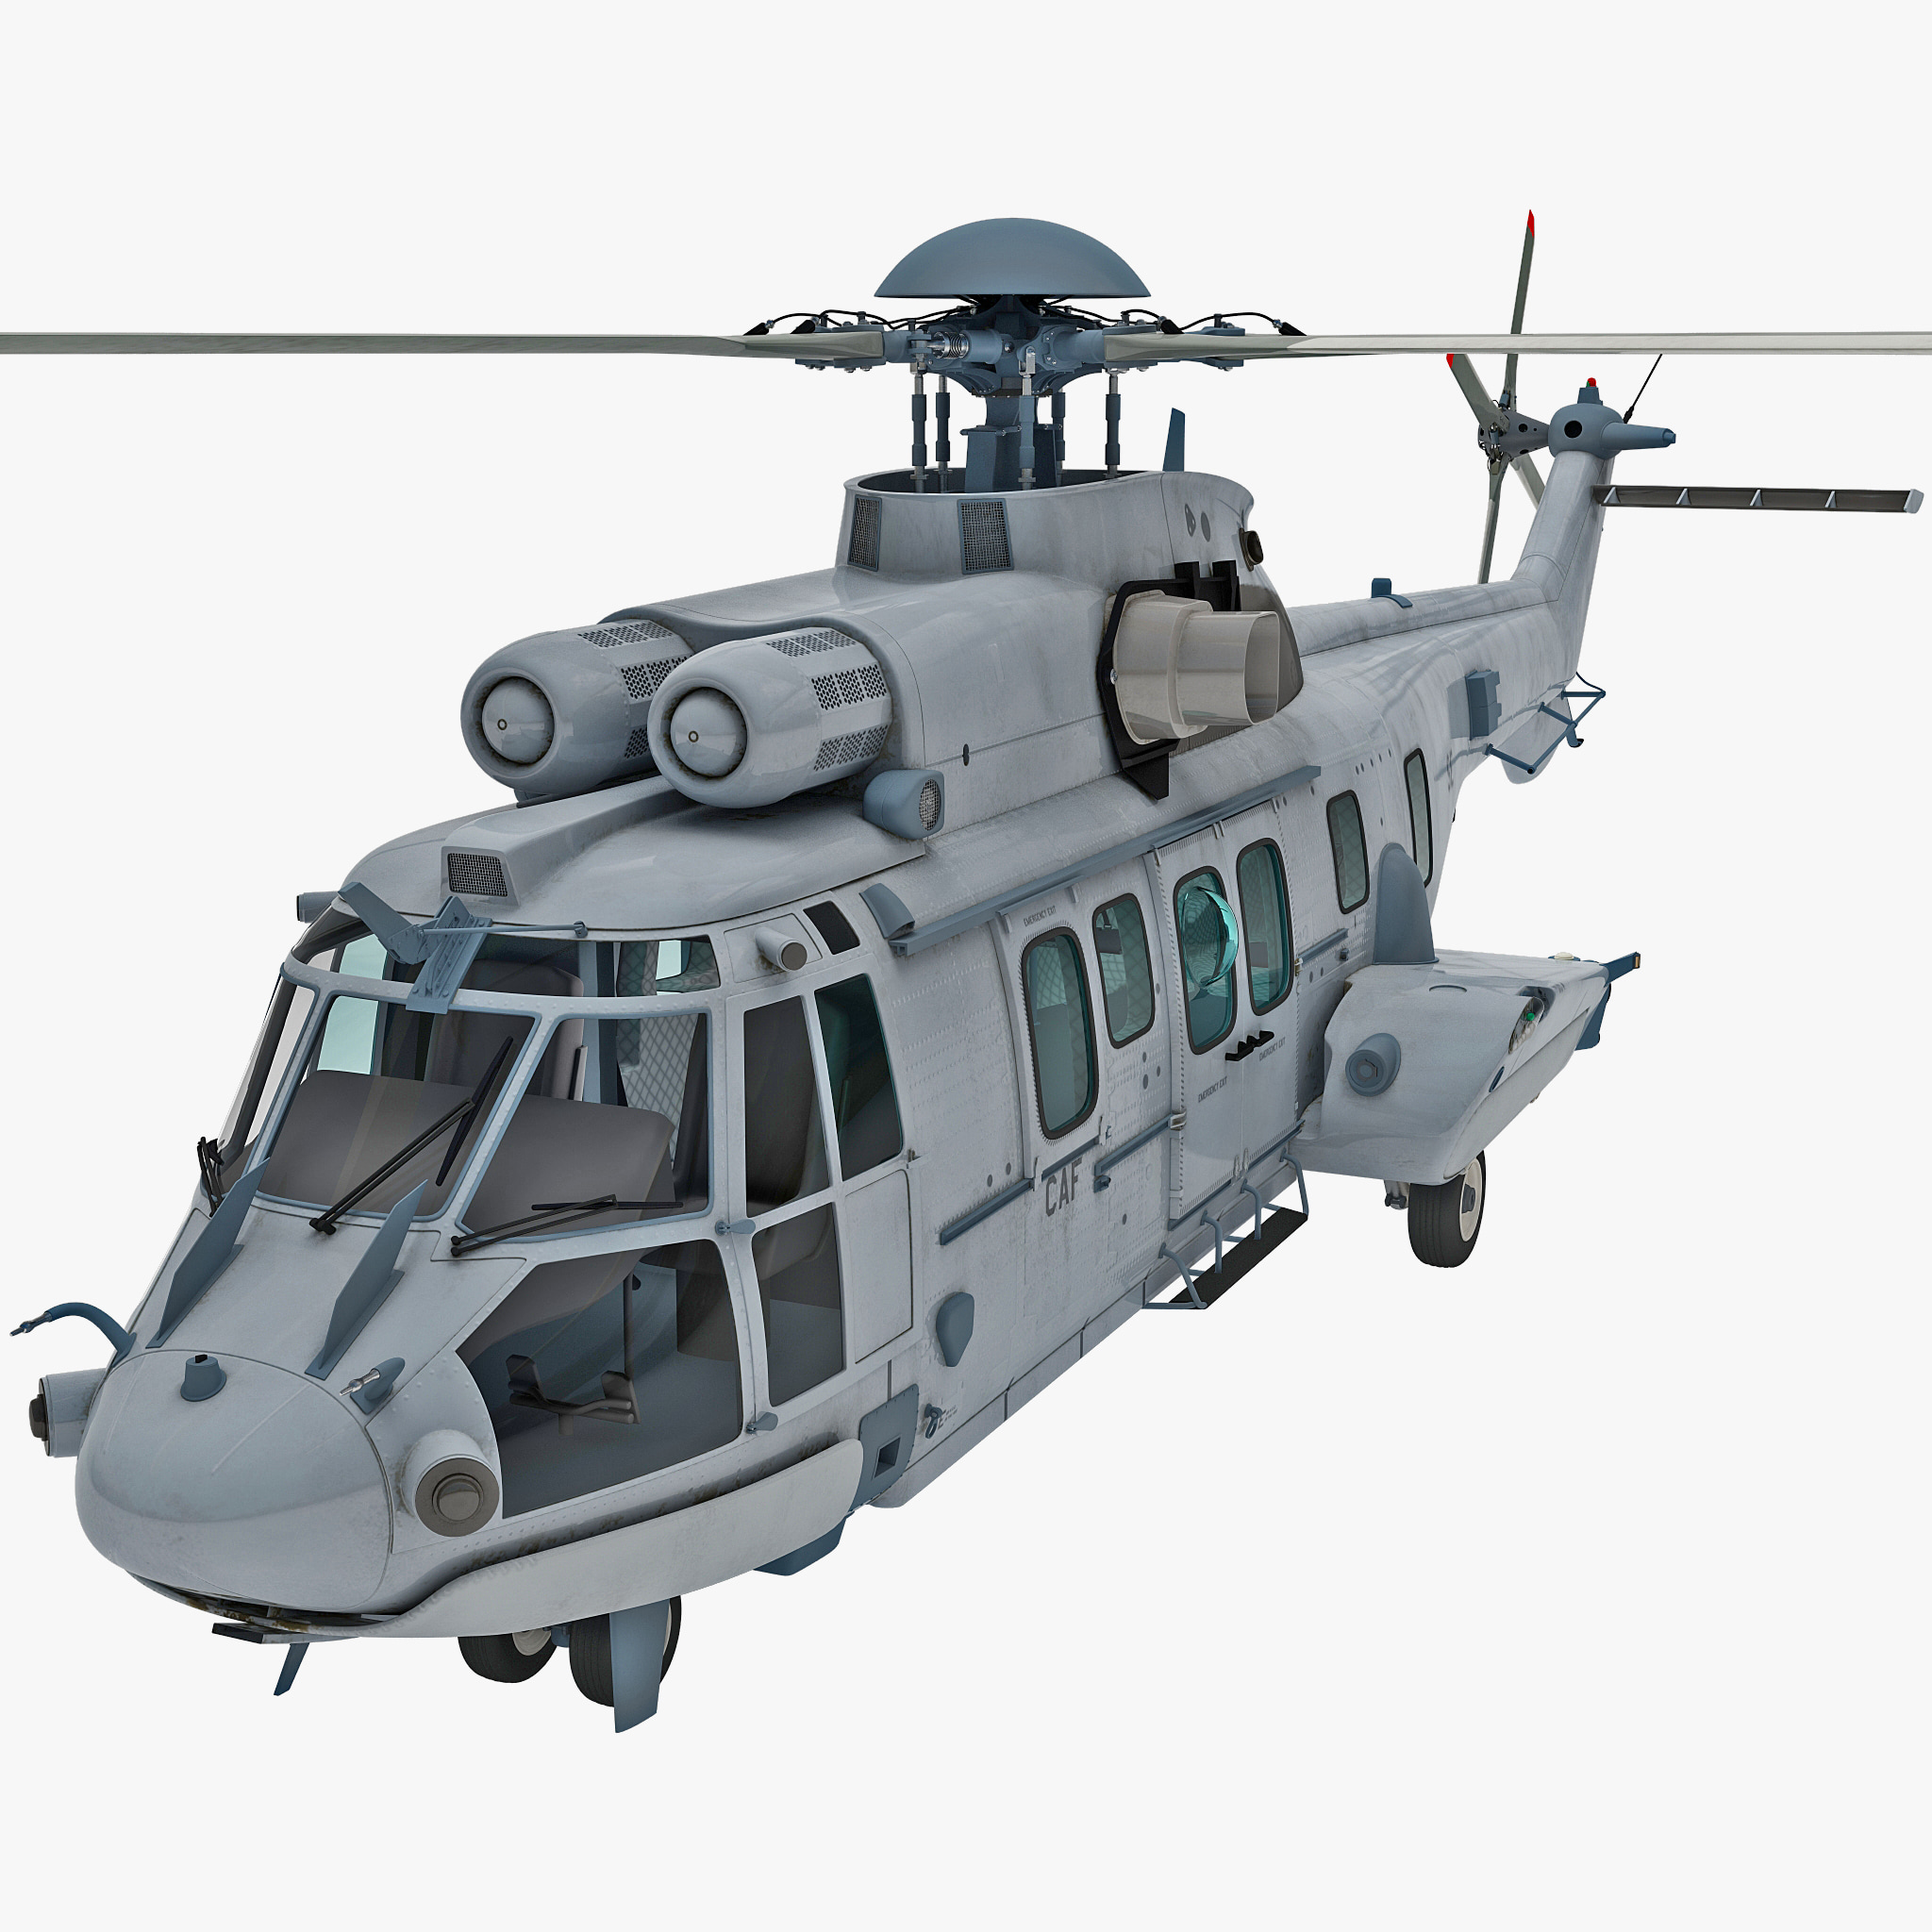 Eurocopter EC725 Caracal Tactical Transport Helicopter 7_1.jpg